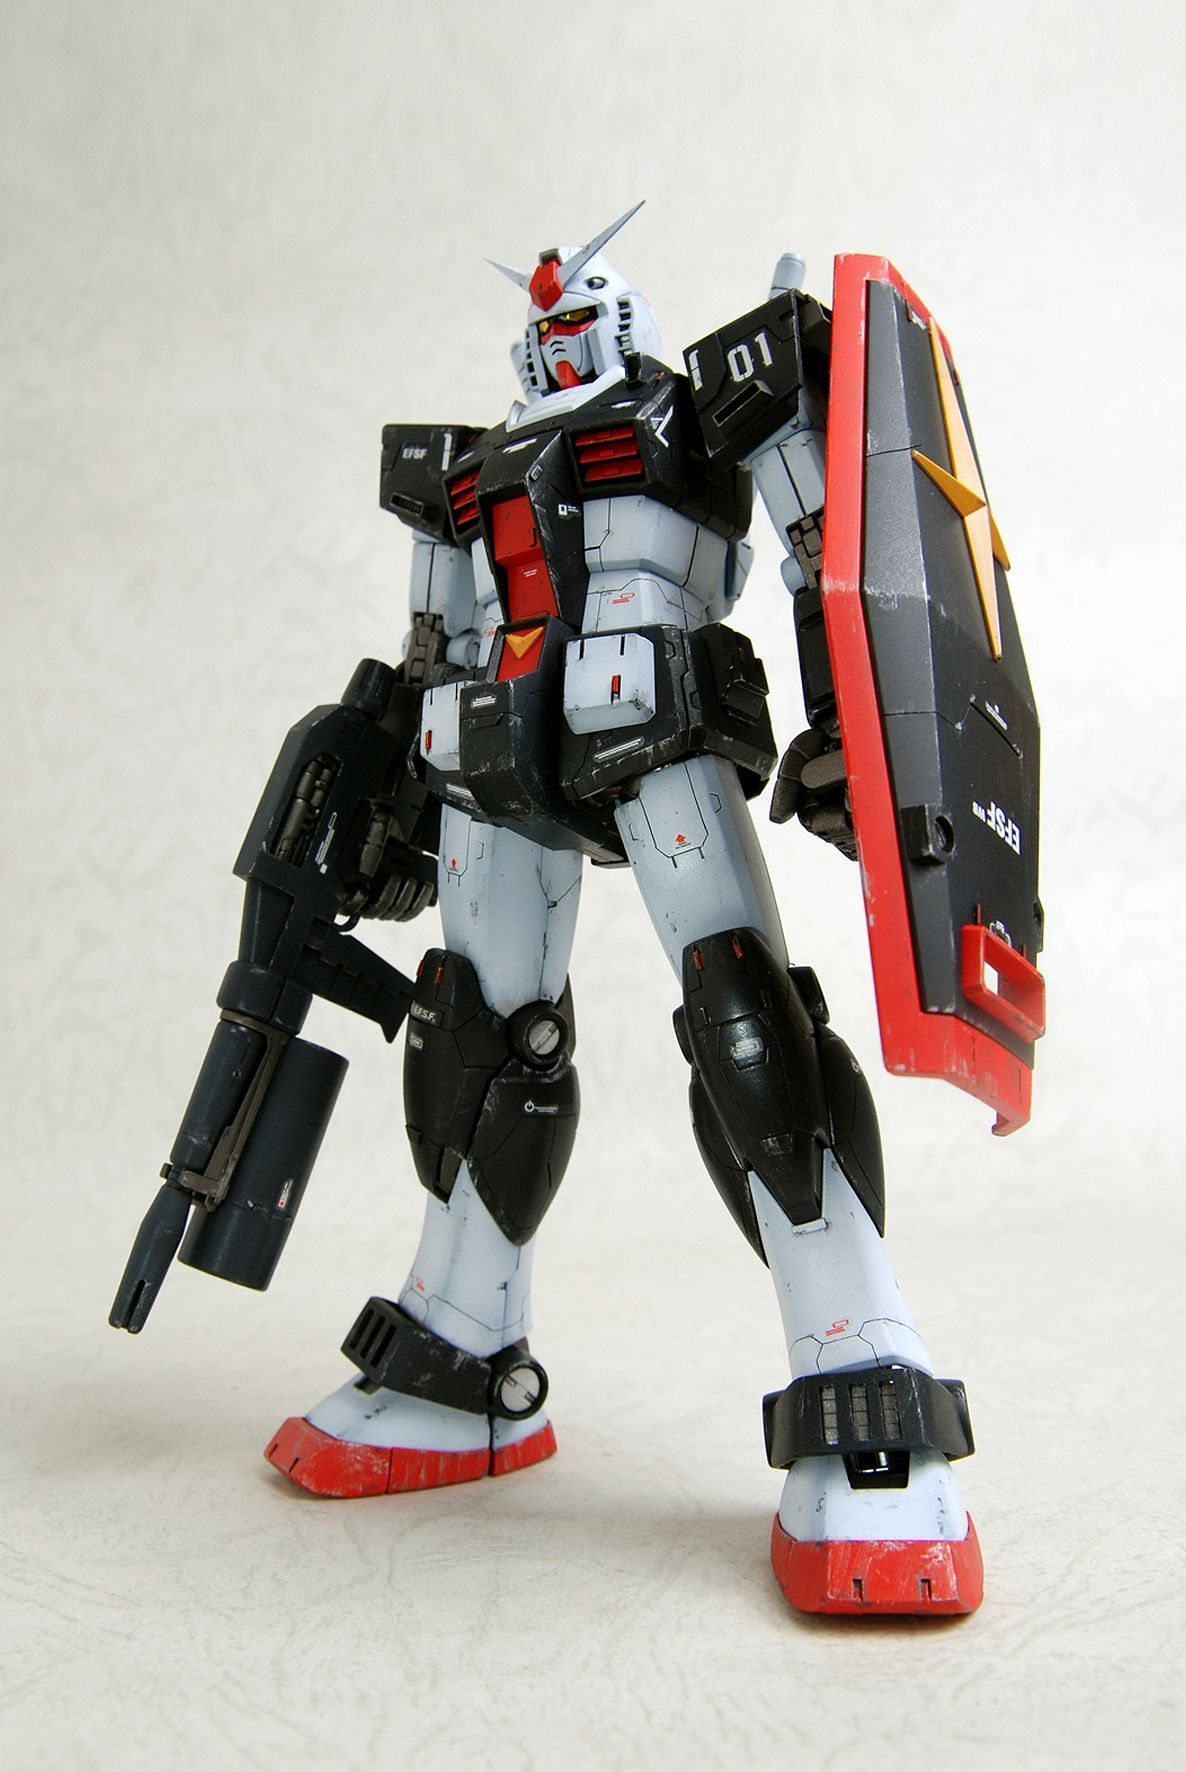 [remodeling] MG RX-78-1 Gundam: Work by 成真 Photoreview + WIP.